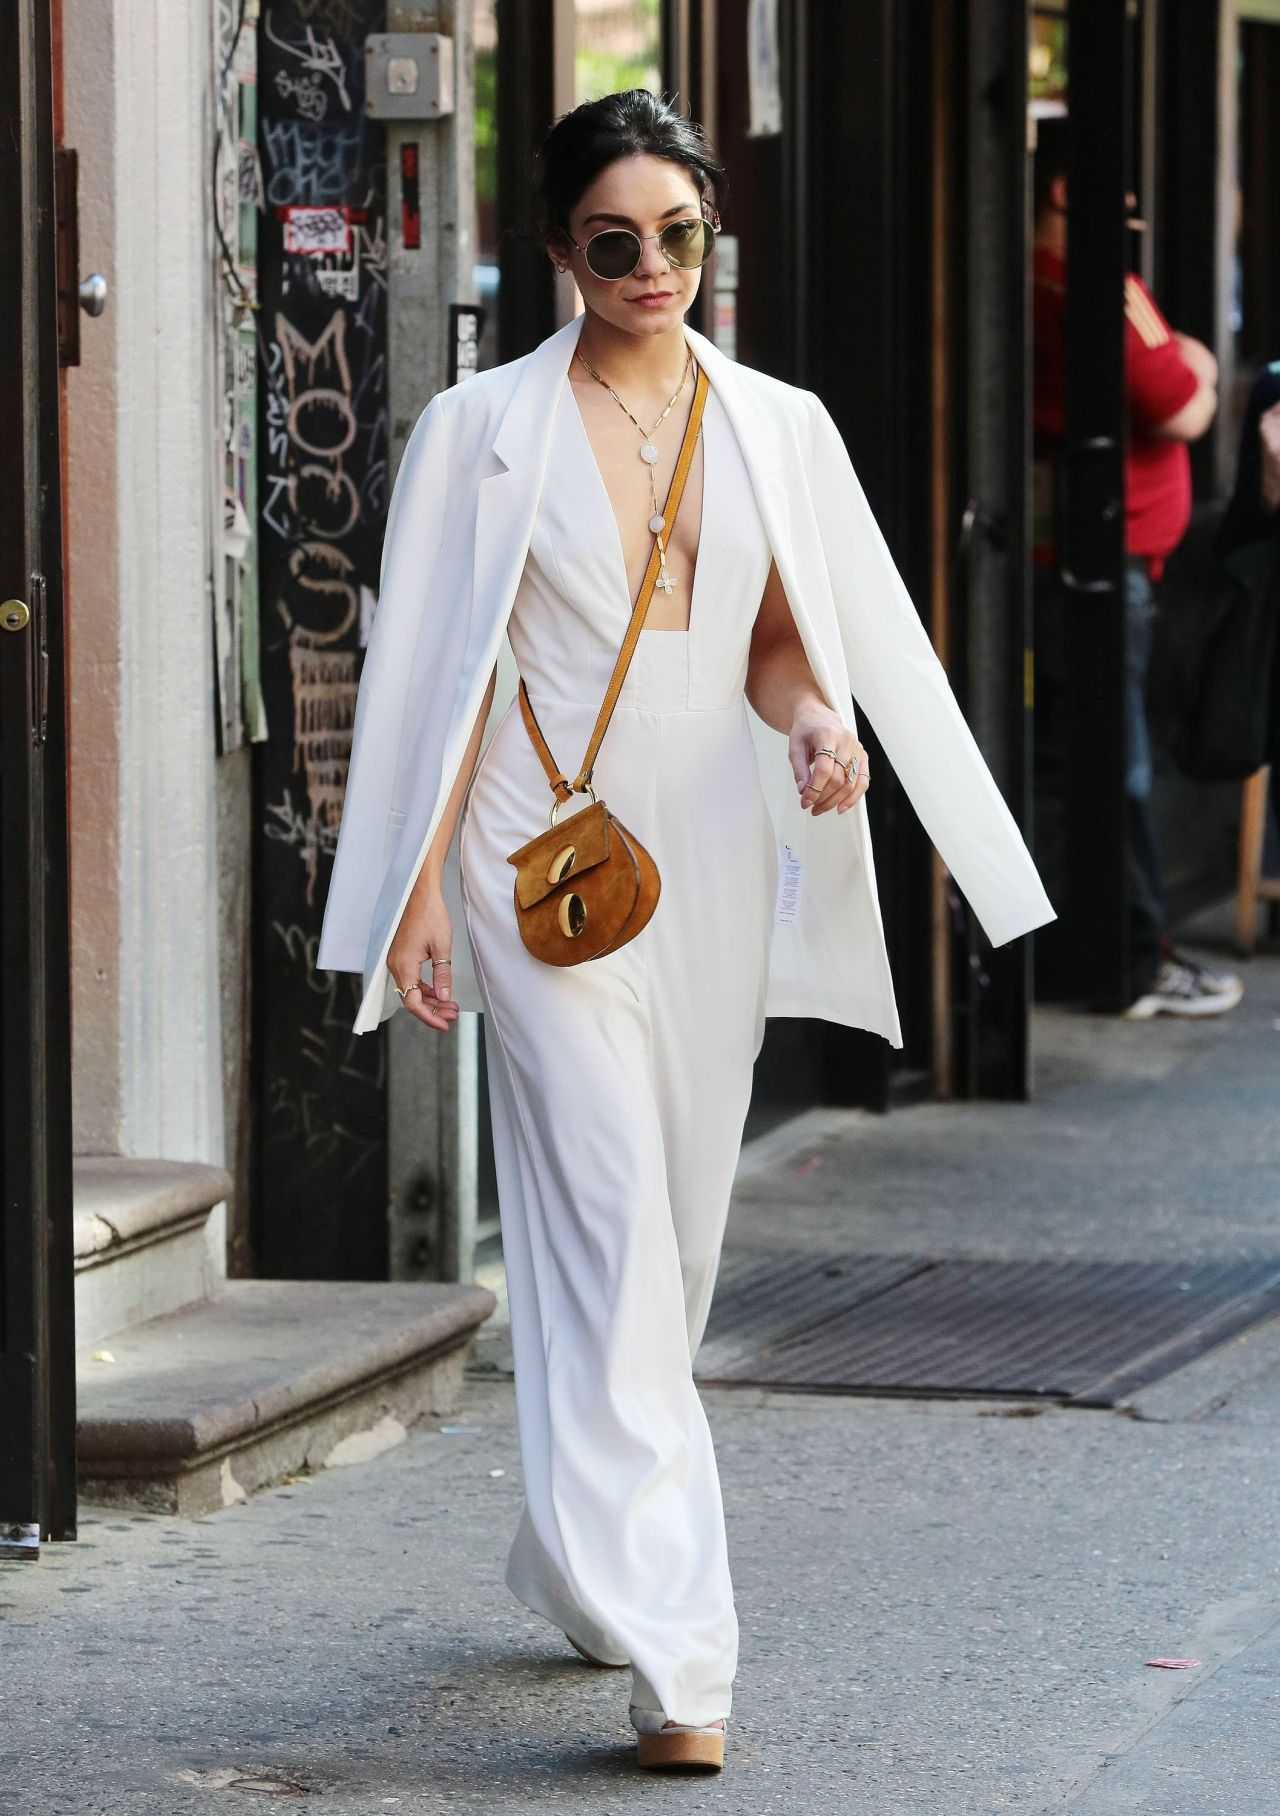 Vanessa Hudgens Street Fashion Leaving Her Apartment In New York City May 2015